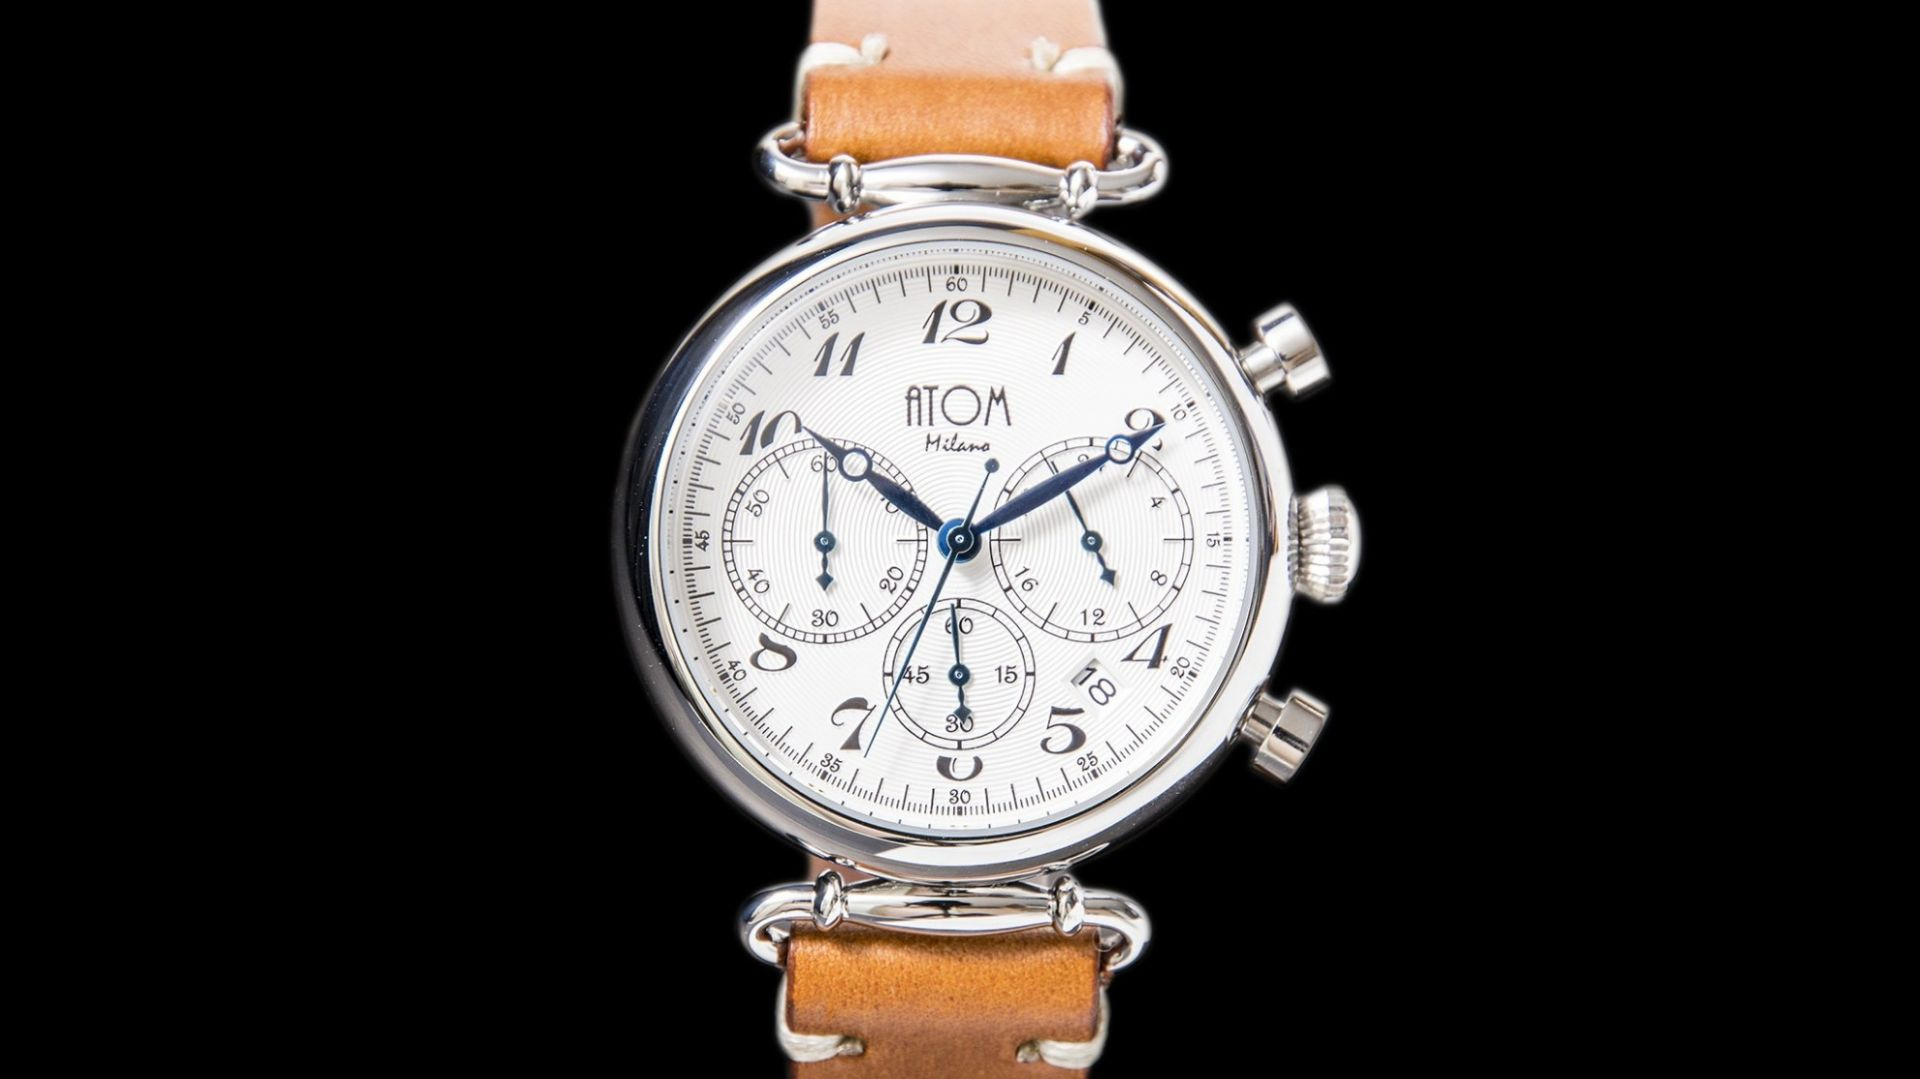 ATOM MILANO 40MM IN SILVER CASE AND LEATHER STRAP (SILVER)